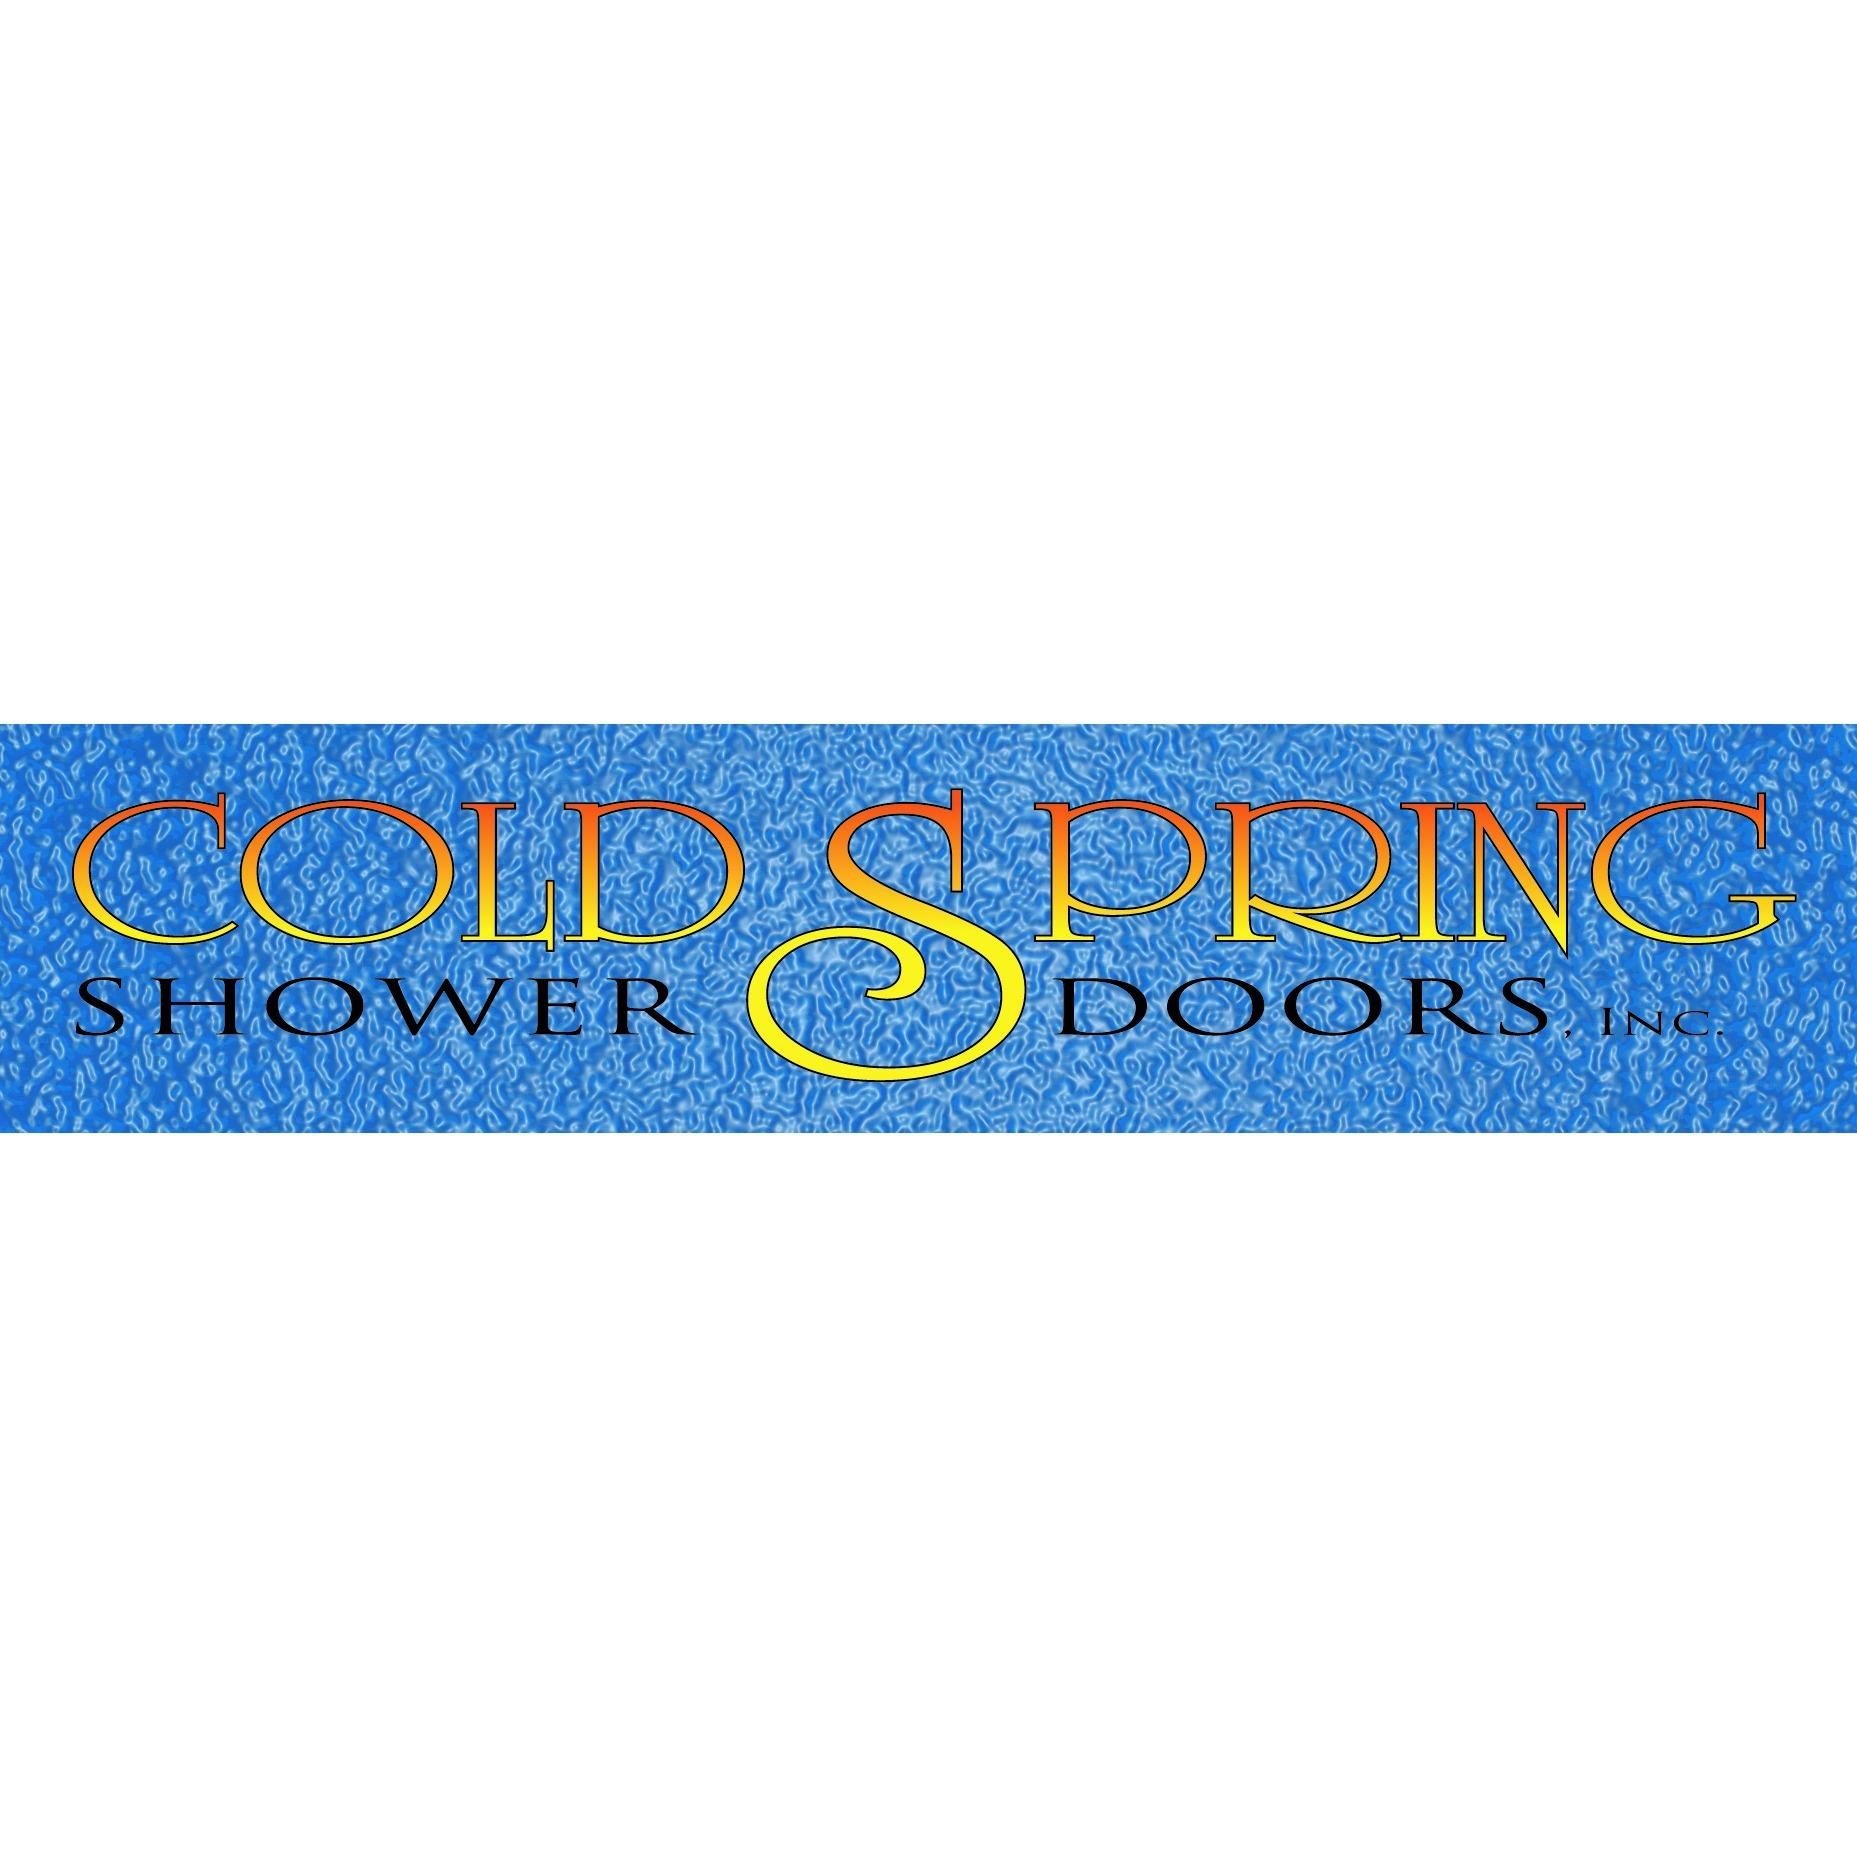 Cold Spring Shower Doors - Cold Spring, NY - Bathroom & Shower Fixtures